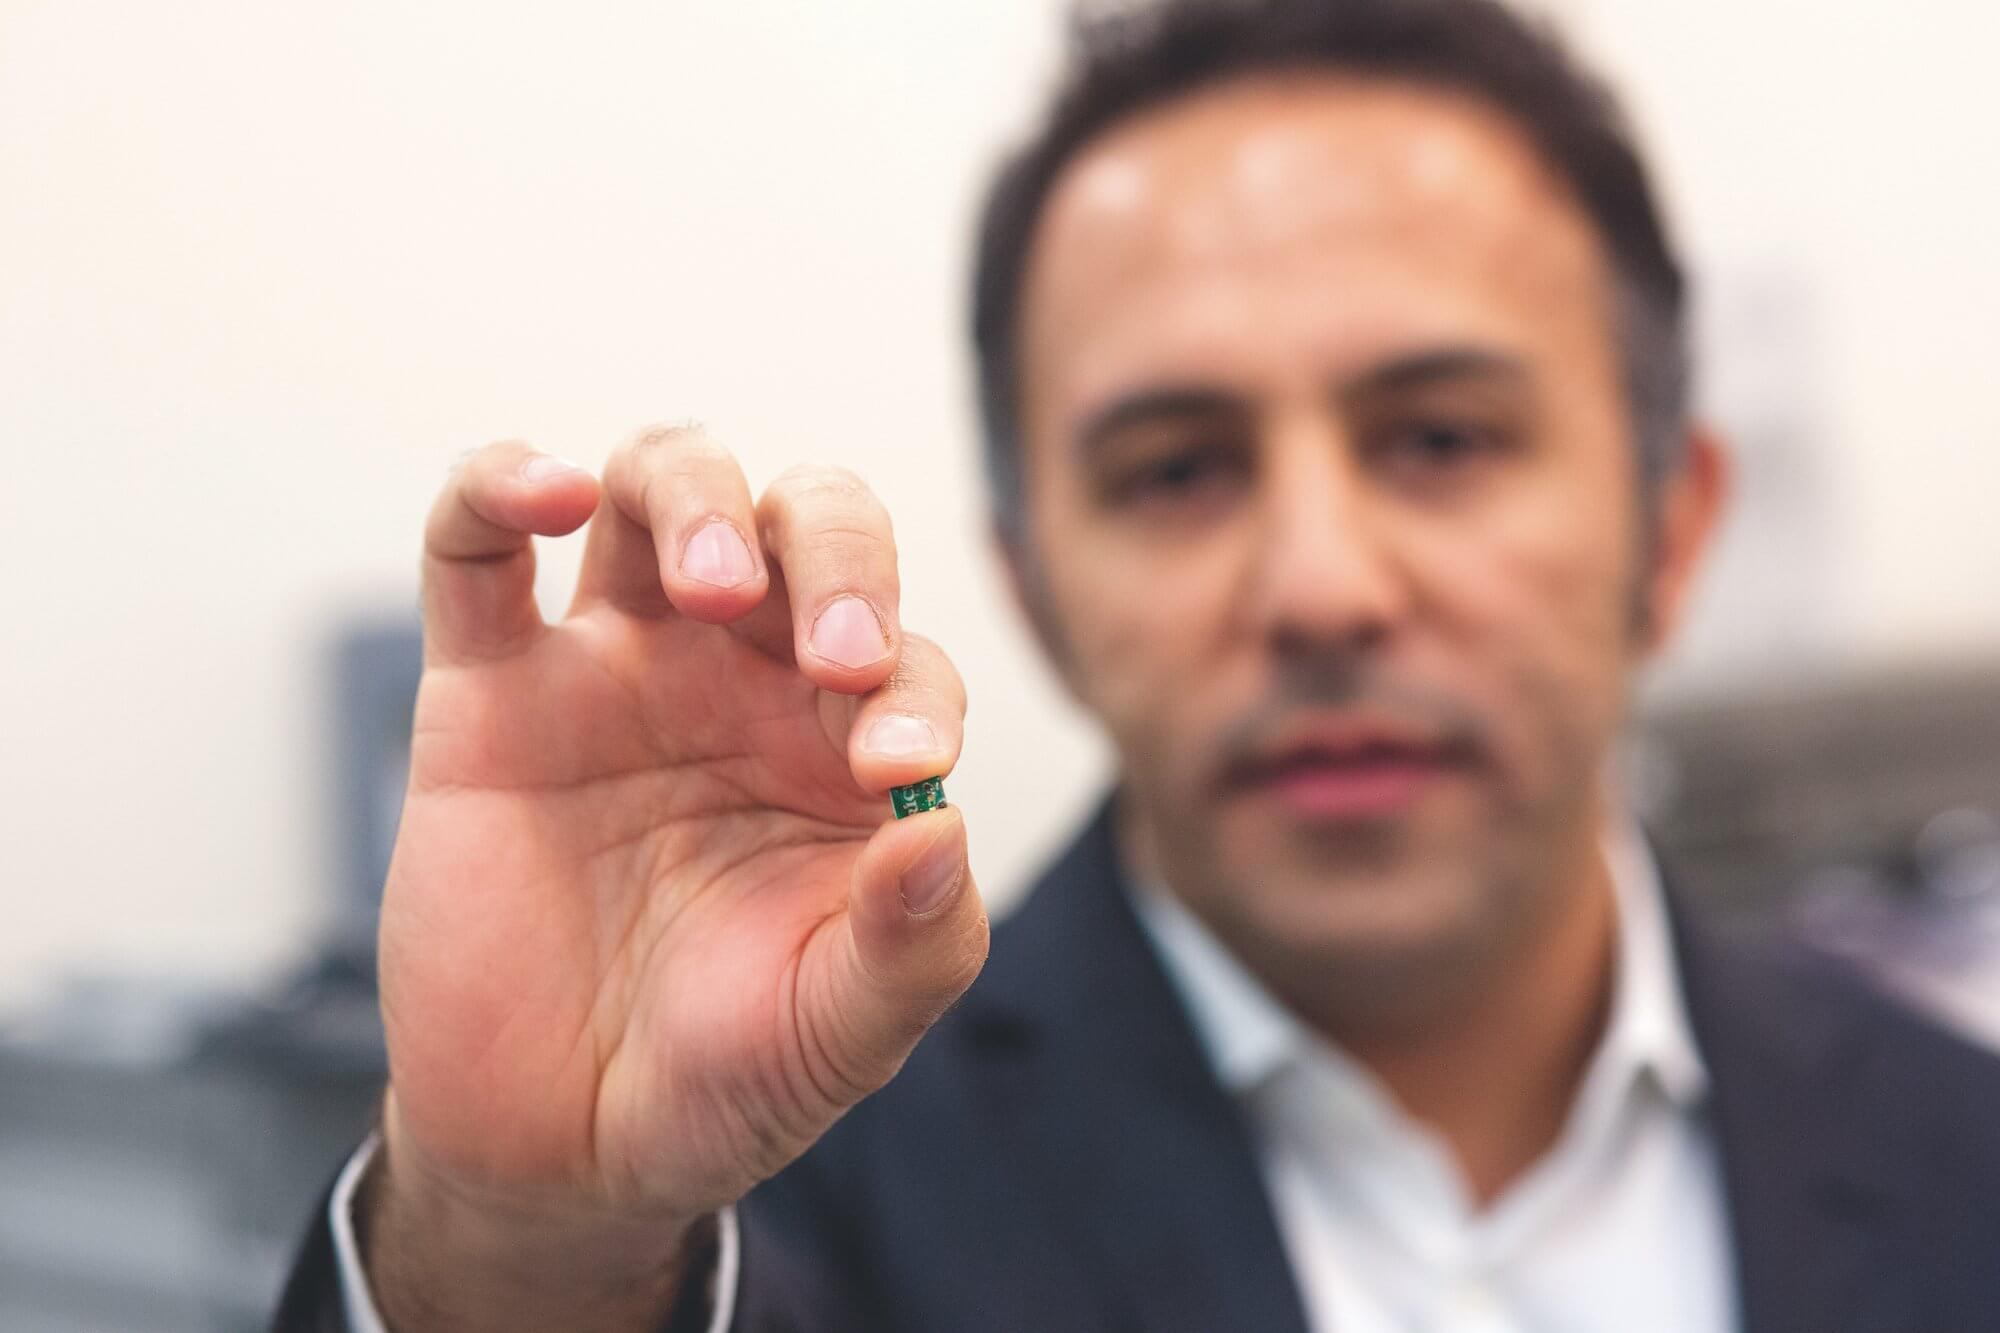 Aydin Babakhani, Ph.D., formerly of Rice University and now associate professor of electrical and computer engineering at the University of California at Los Angeles, holds the pacemaker chip.